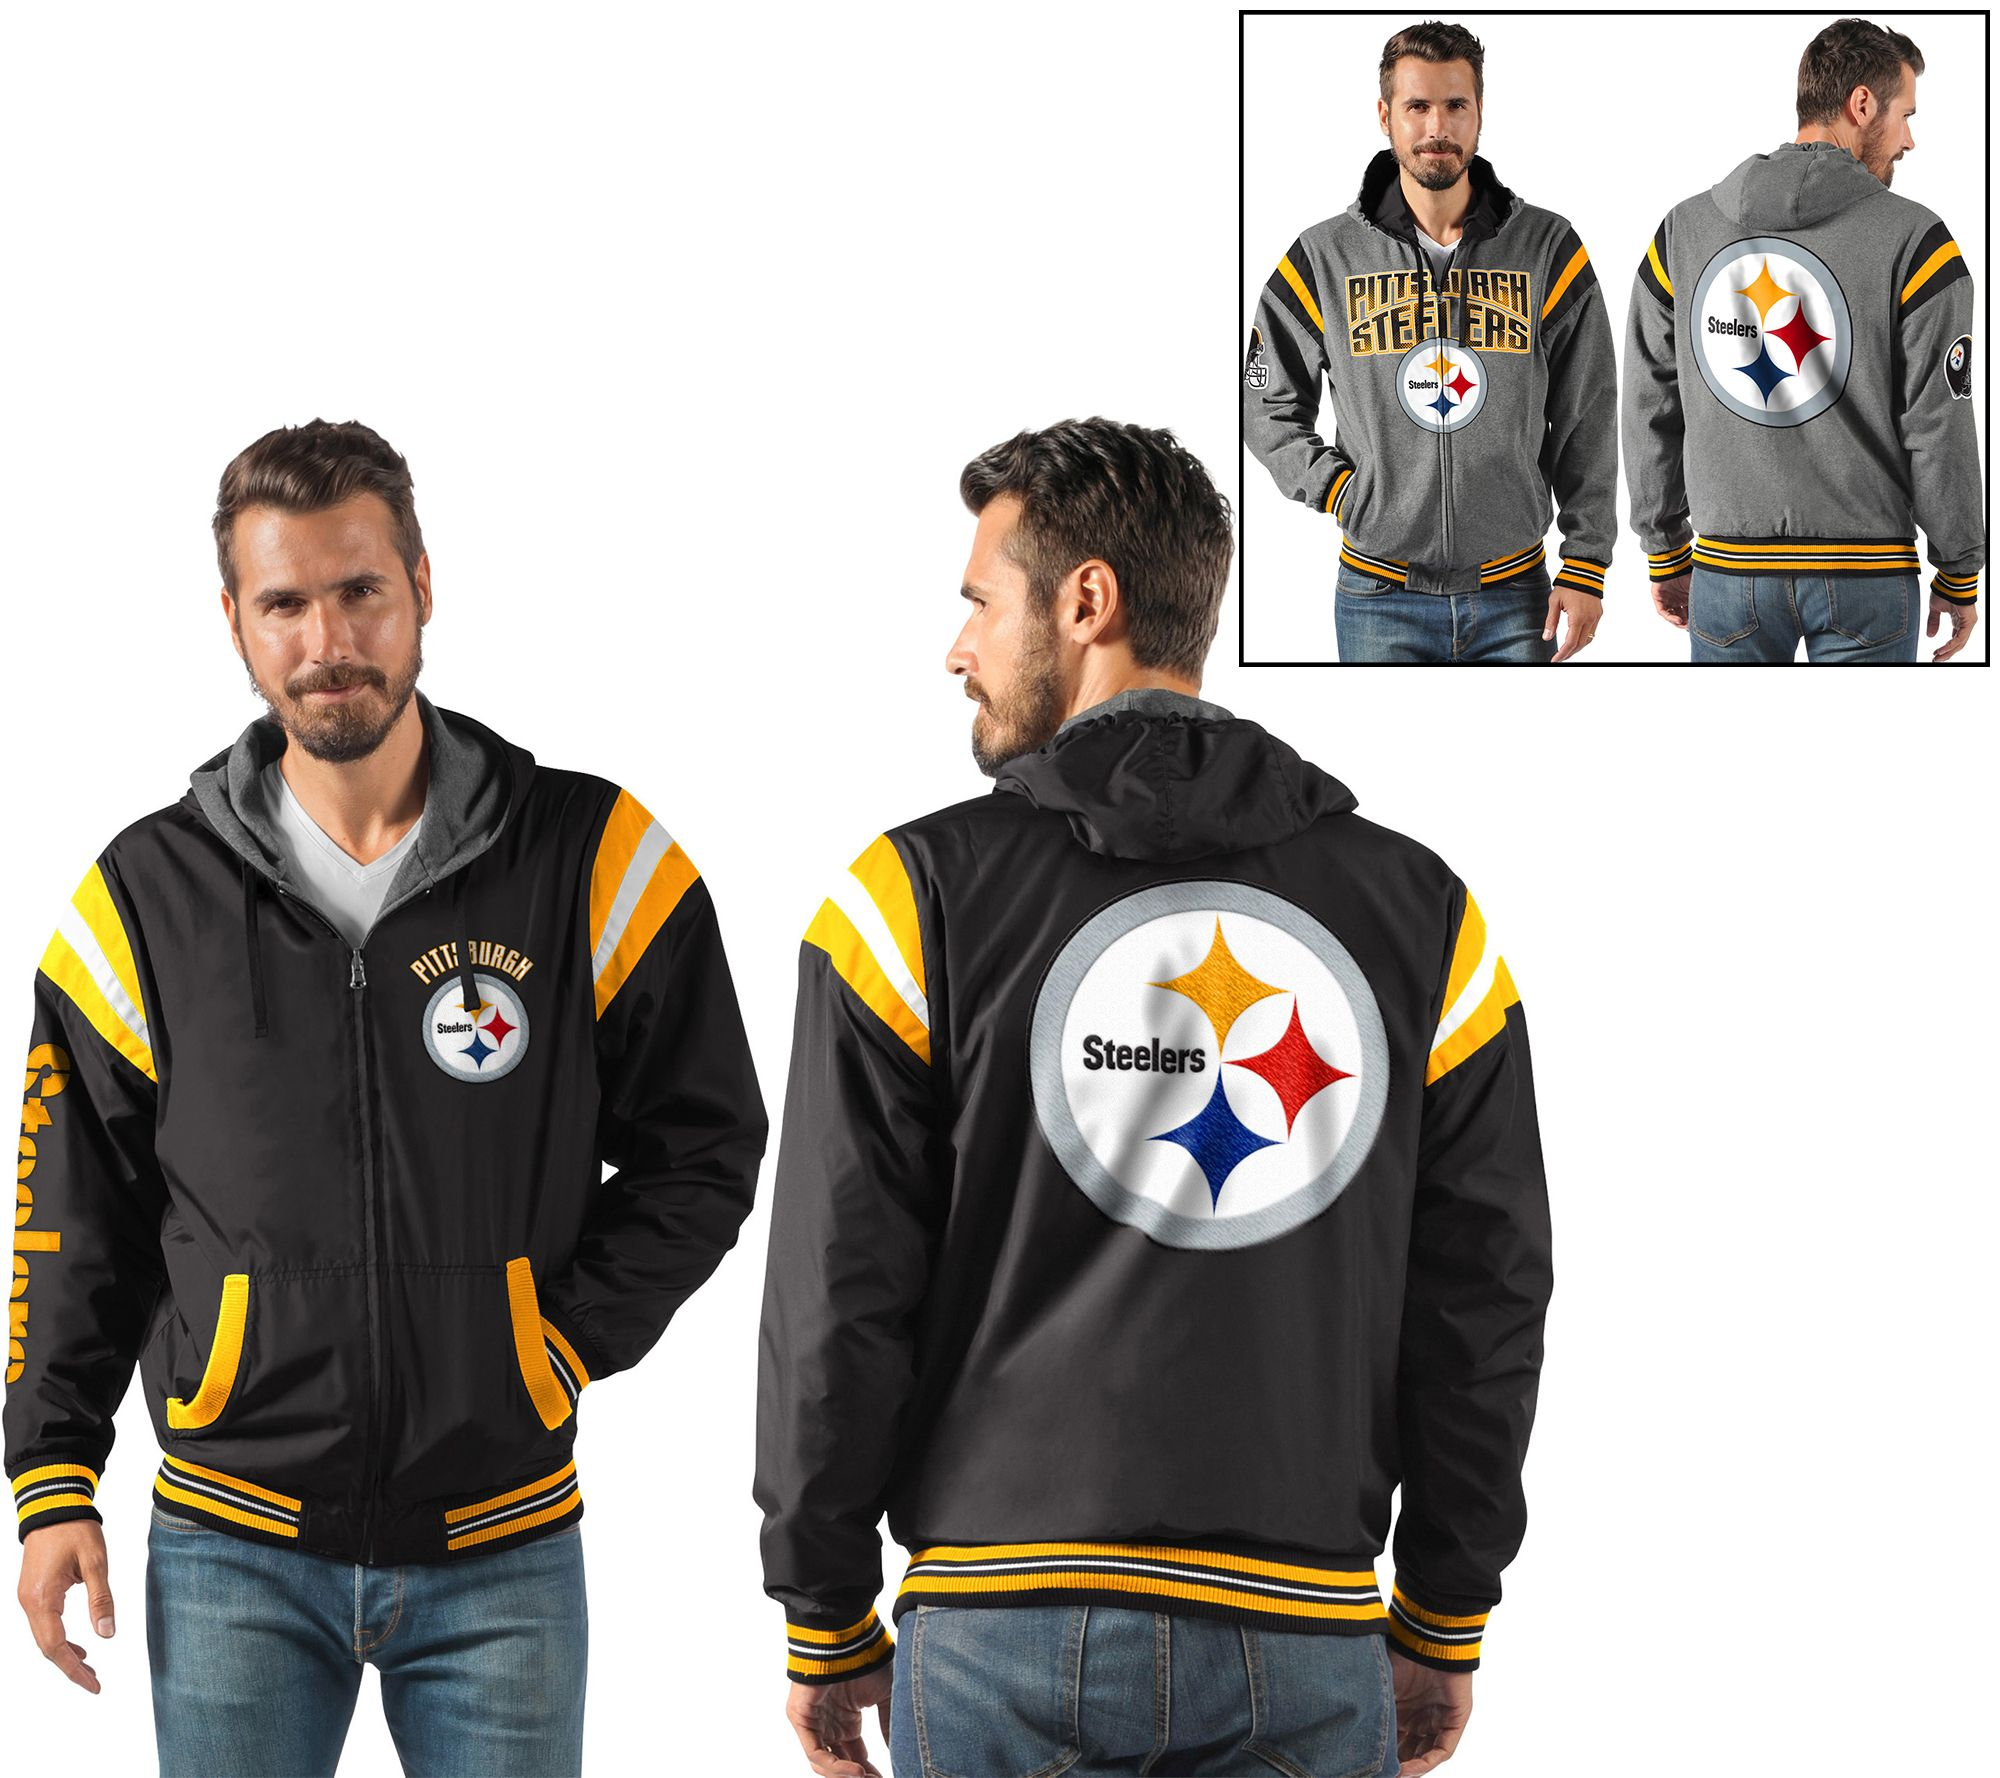 NFL Ultimate Fan Reversible Hooded Full Zip Jacket - Page 1 — QVC.com 479753c59